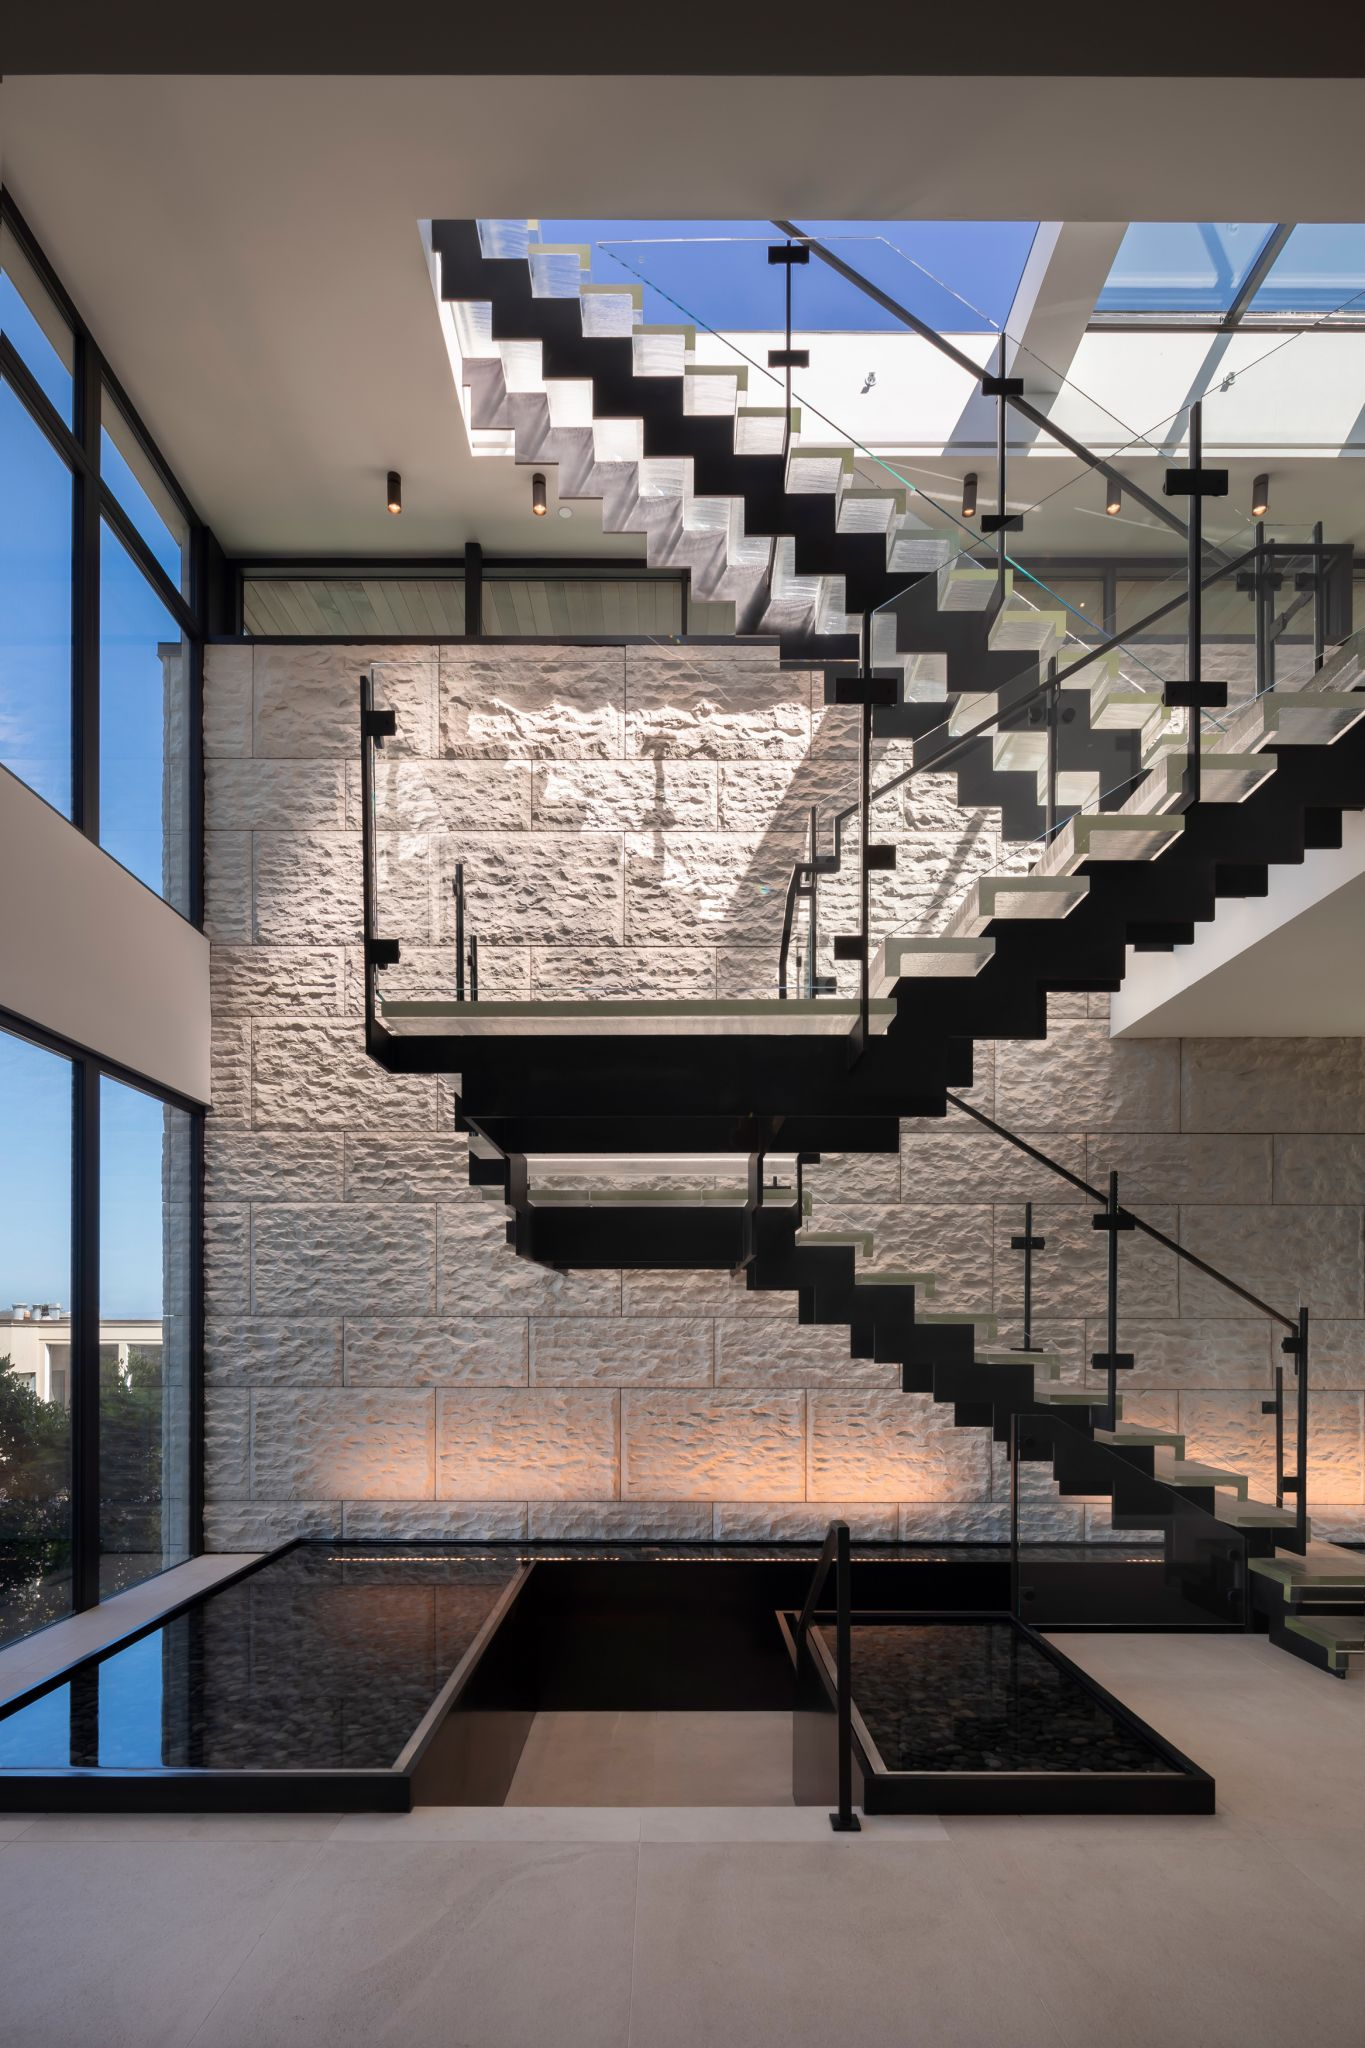 The home has a high-speed elevator, but this floating glass staircase, rising up over indoor reflecting pools toward a massive operable skylight, is art.